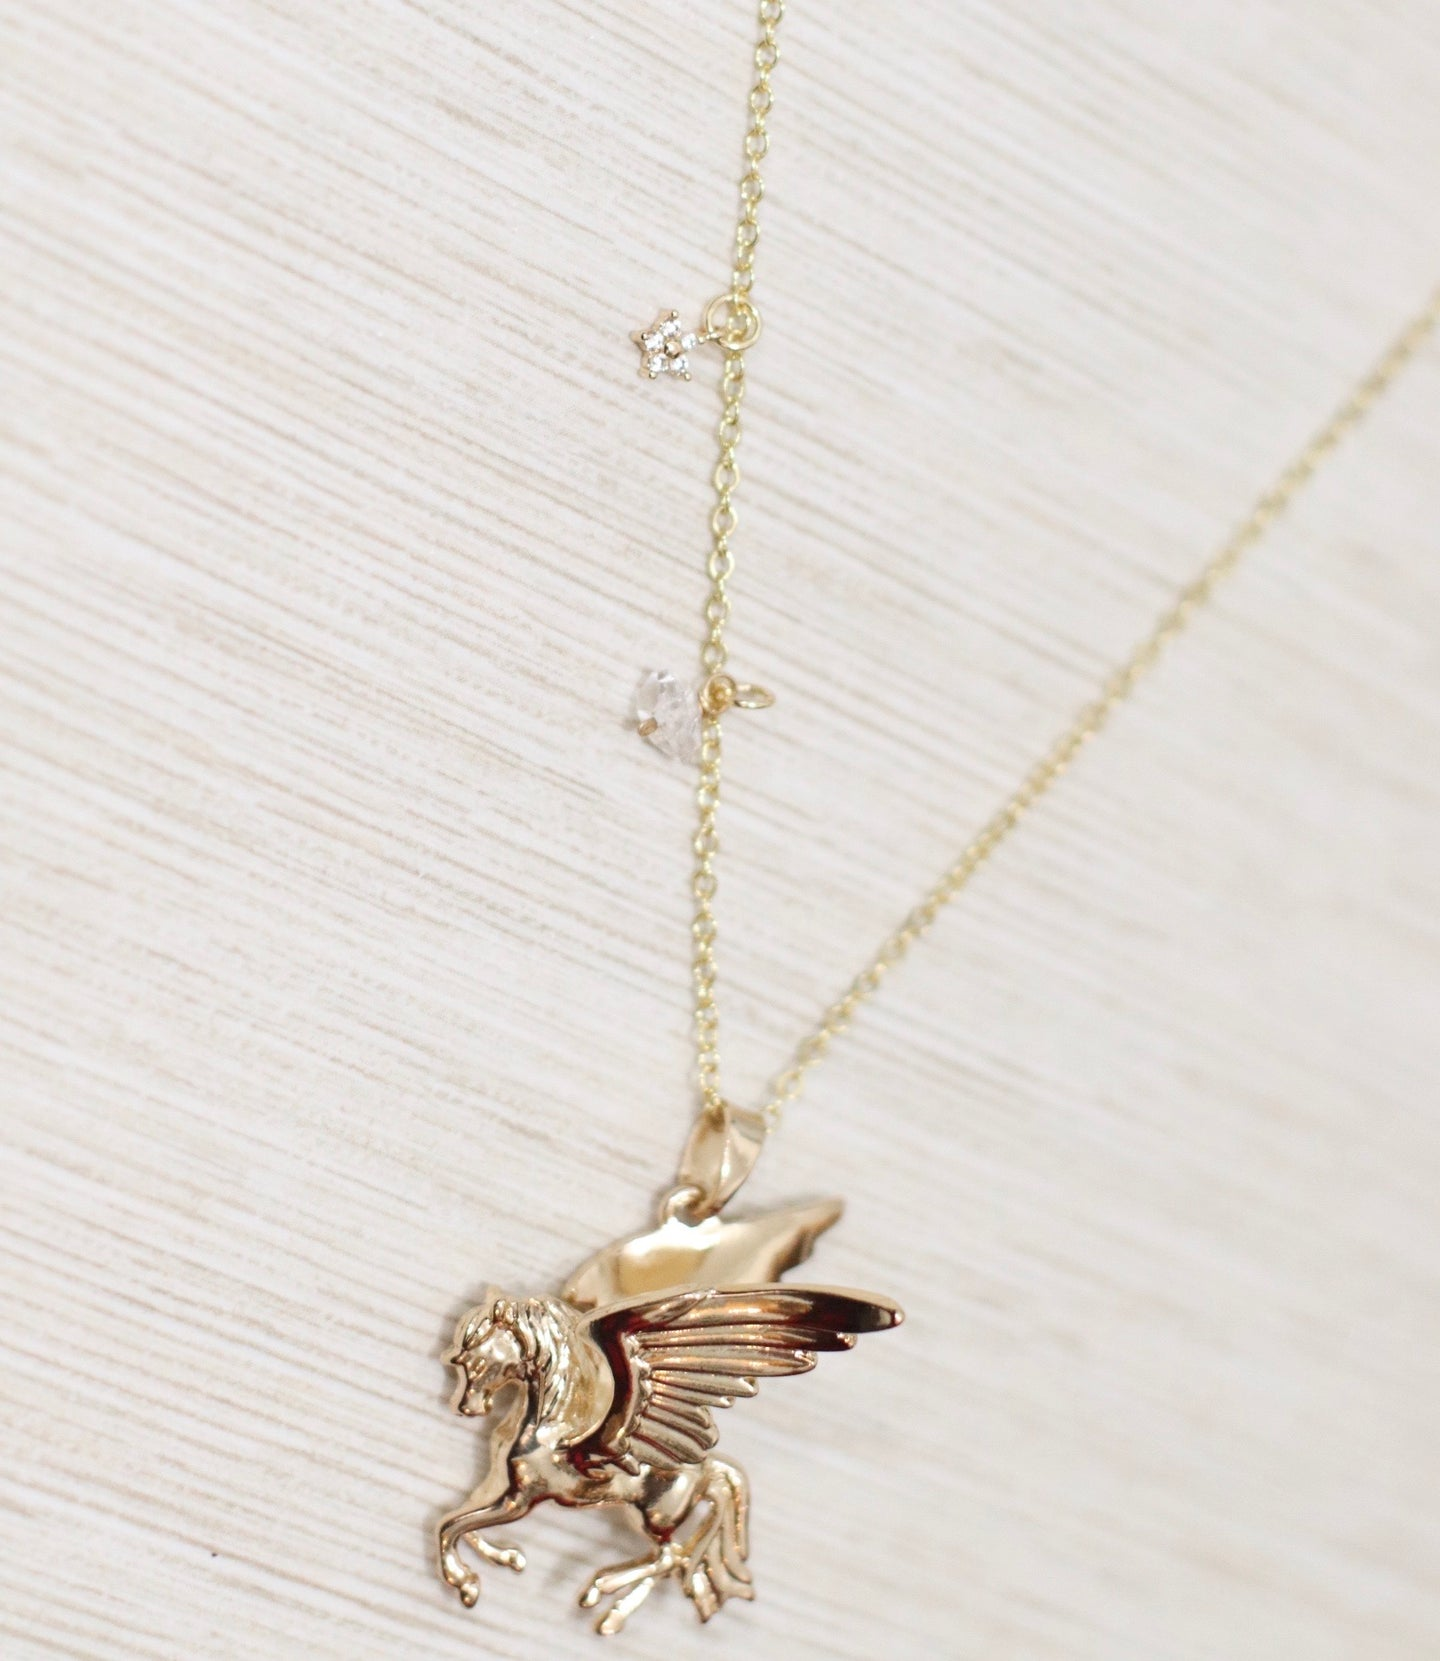 The Pegasus Necklace